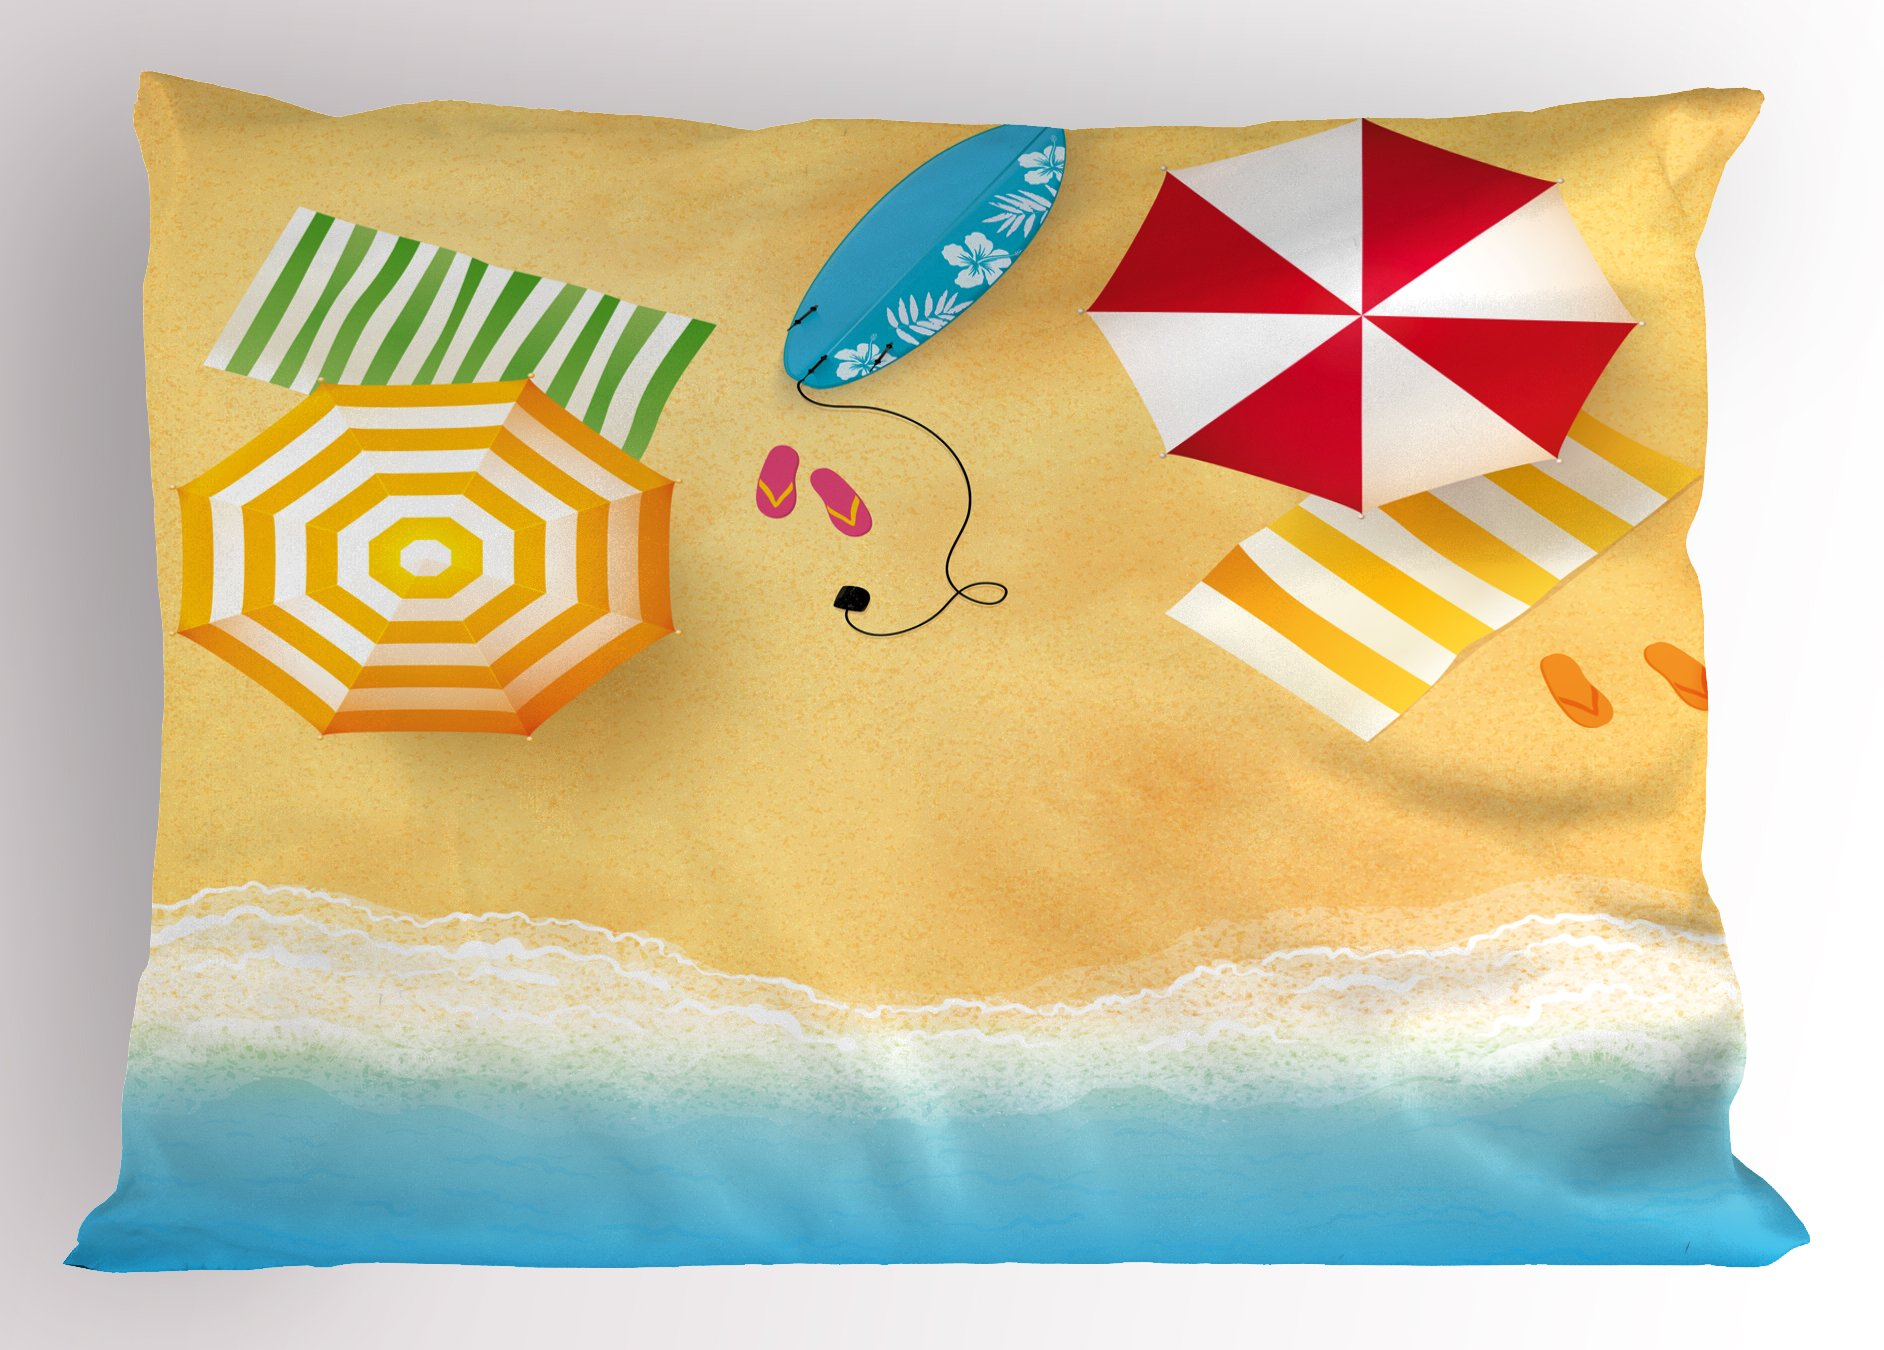 Ambesonne Beach Pillow Sham, Beach Waves with Umbrella Towels and Surfing Board Swimming Themed Summer Season, Decorative Standard Size Printed Pillowcase, 26 X 20 inches, Multicolor